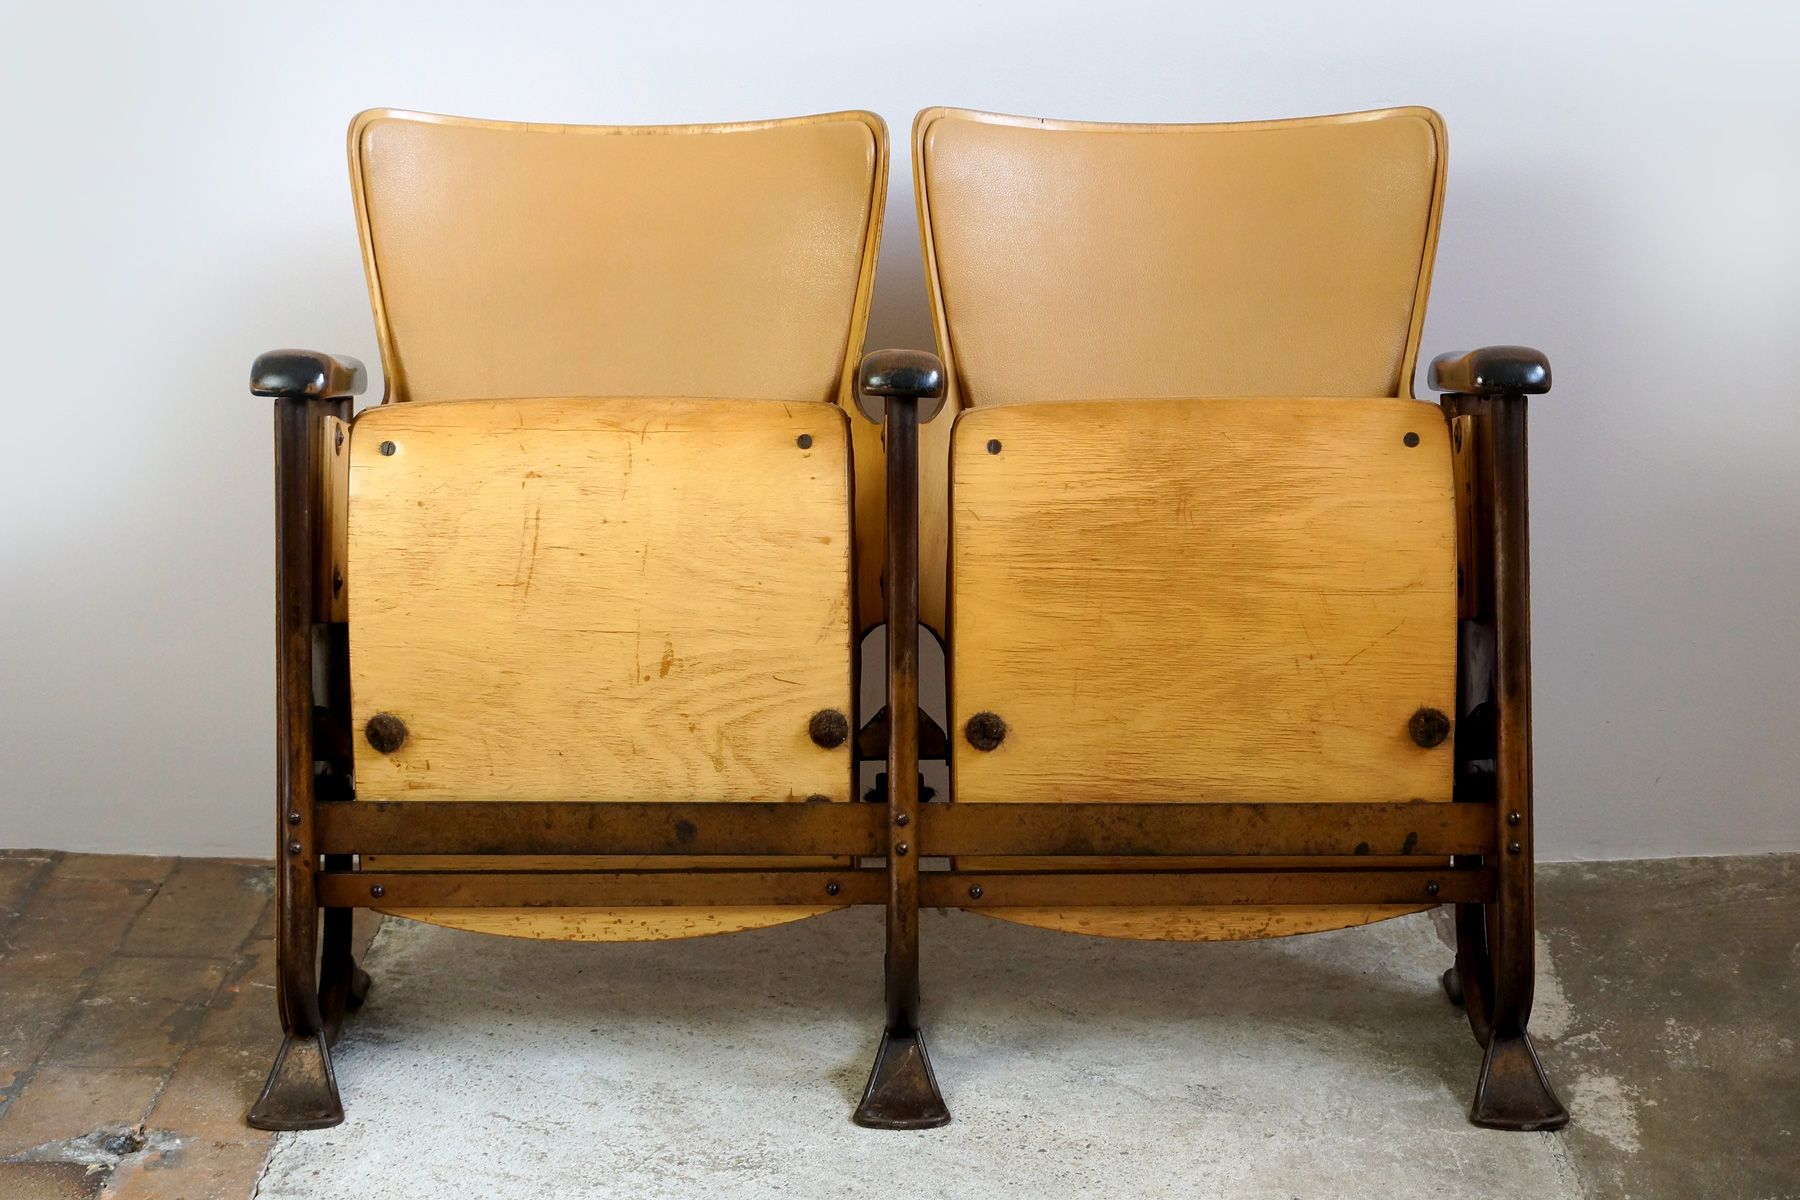 Art Deco Two-Seater Cinema Bench, 1920s